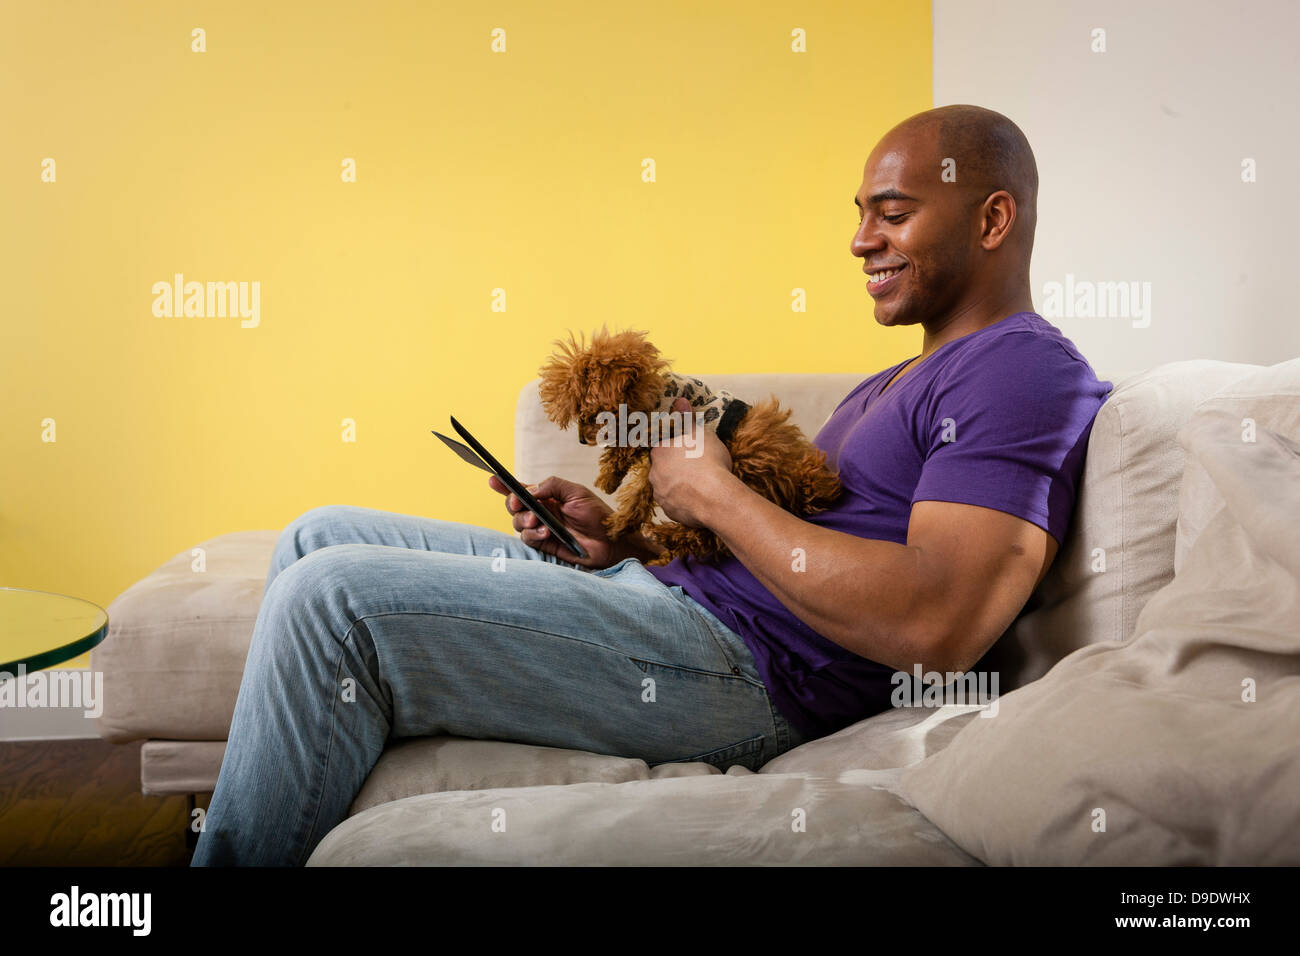 Mid adult male sitting on sofa with dog looking at digital tablet - Stock Image